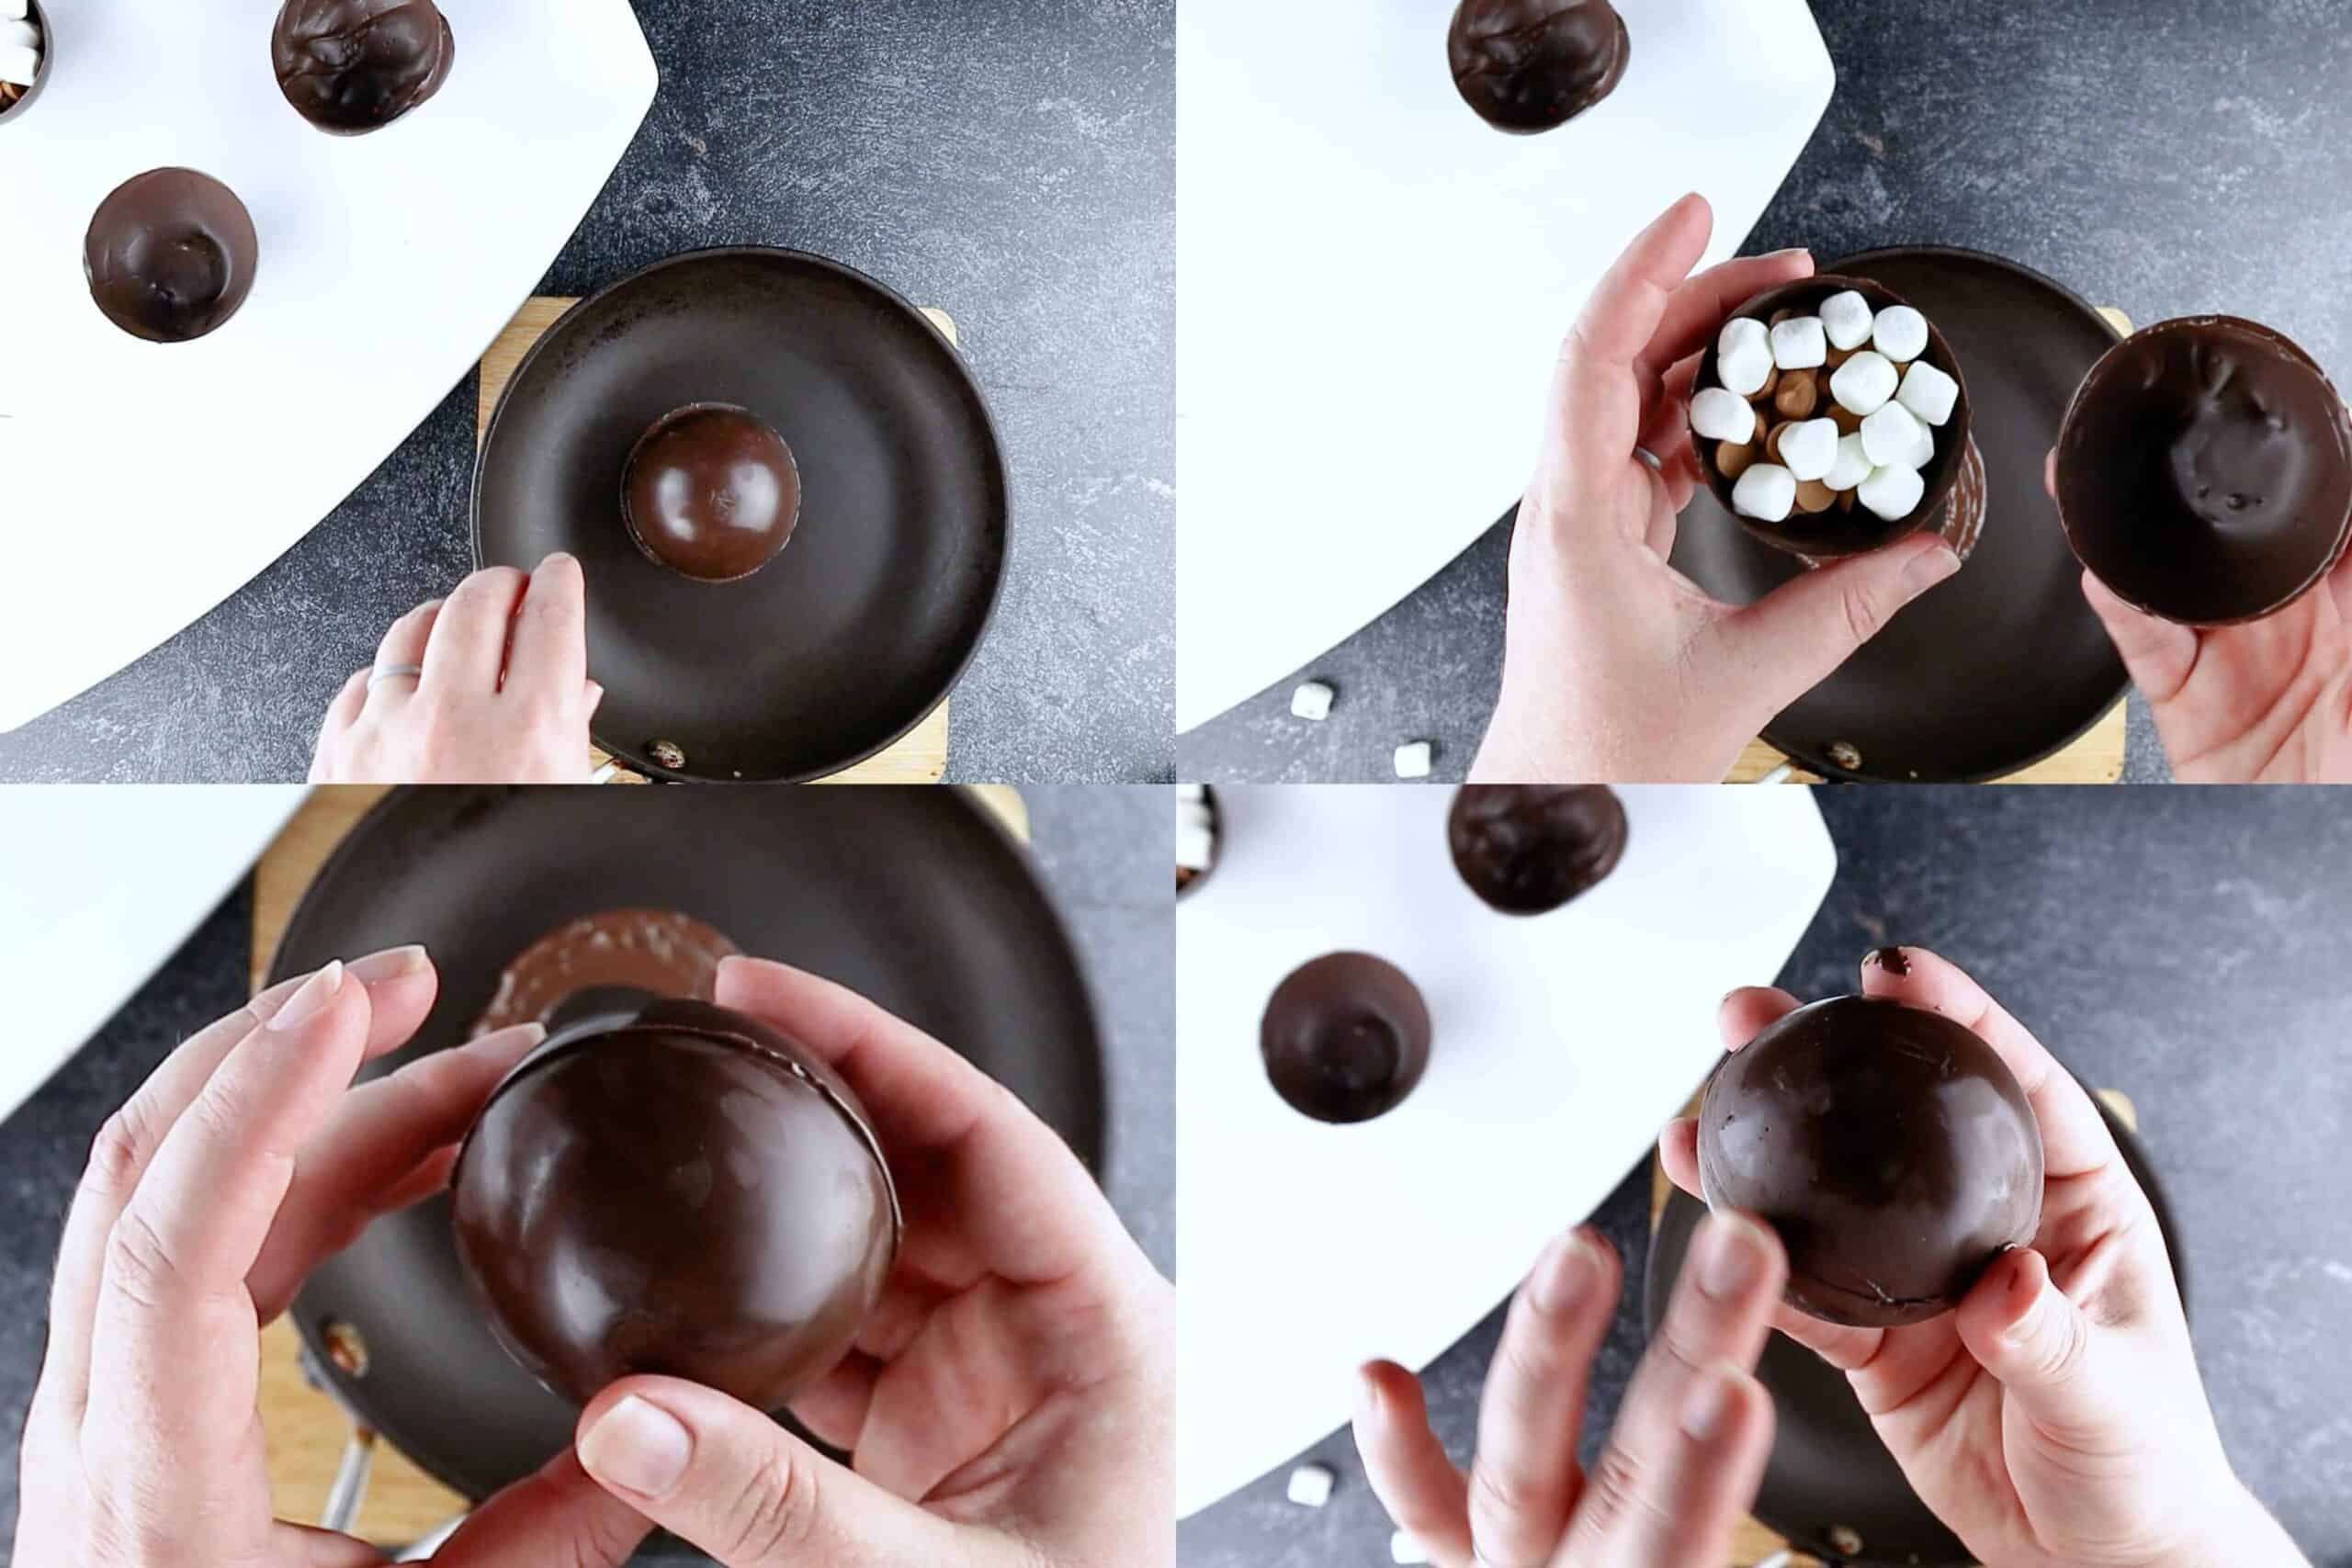 Sticking the two sides of the chocolate bombs together